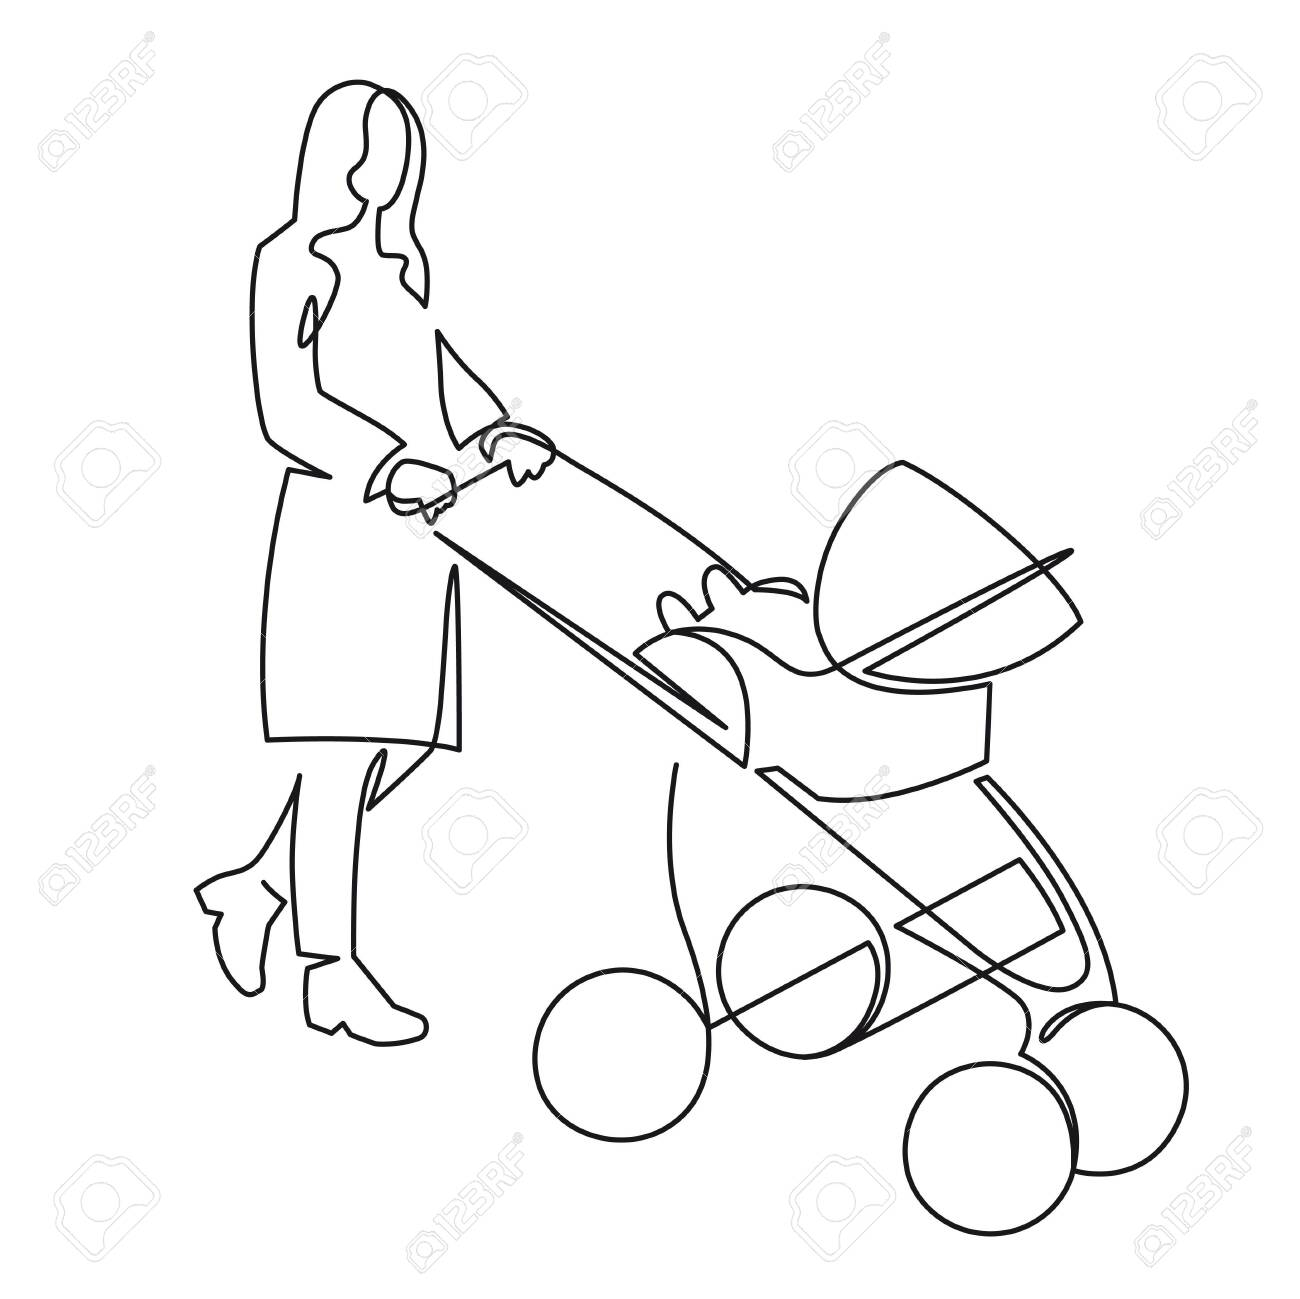 Continuous one line drawing of mom with a toddler in a stroller drawn by hand vector illustration. Mother with a baby on a walk. - 158275280